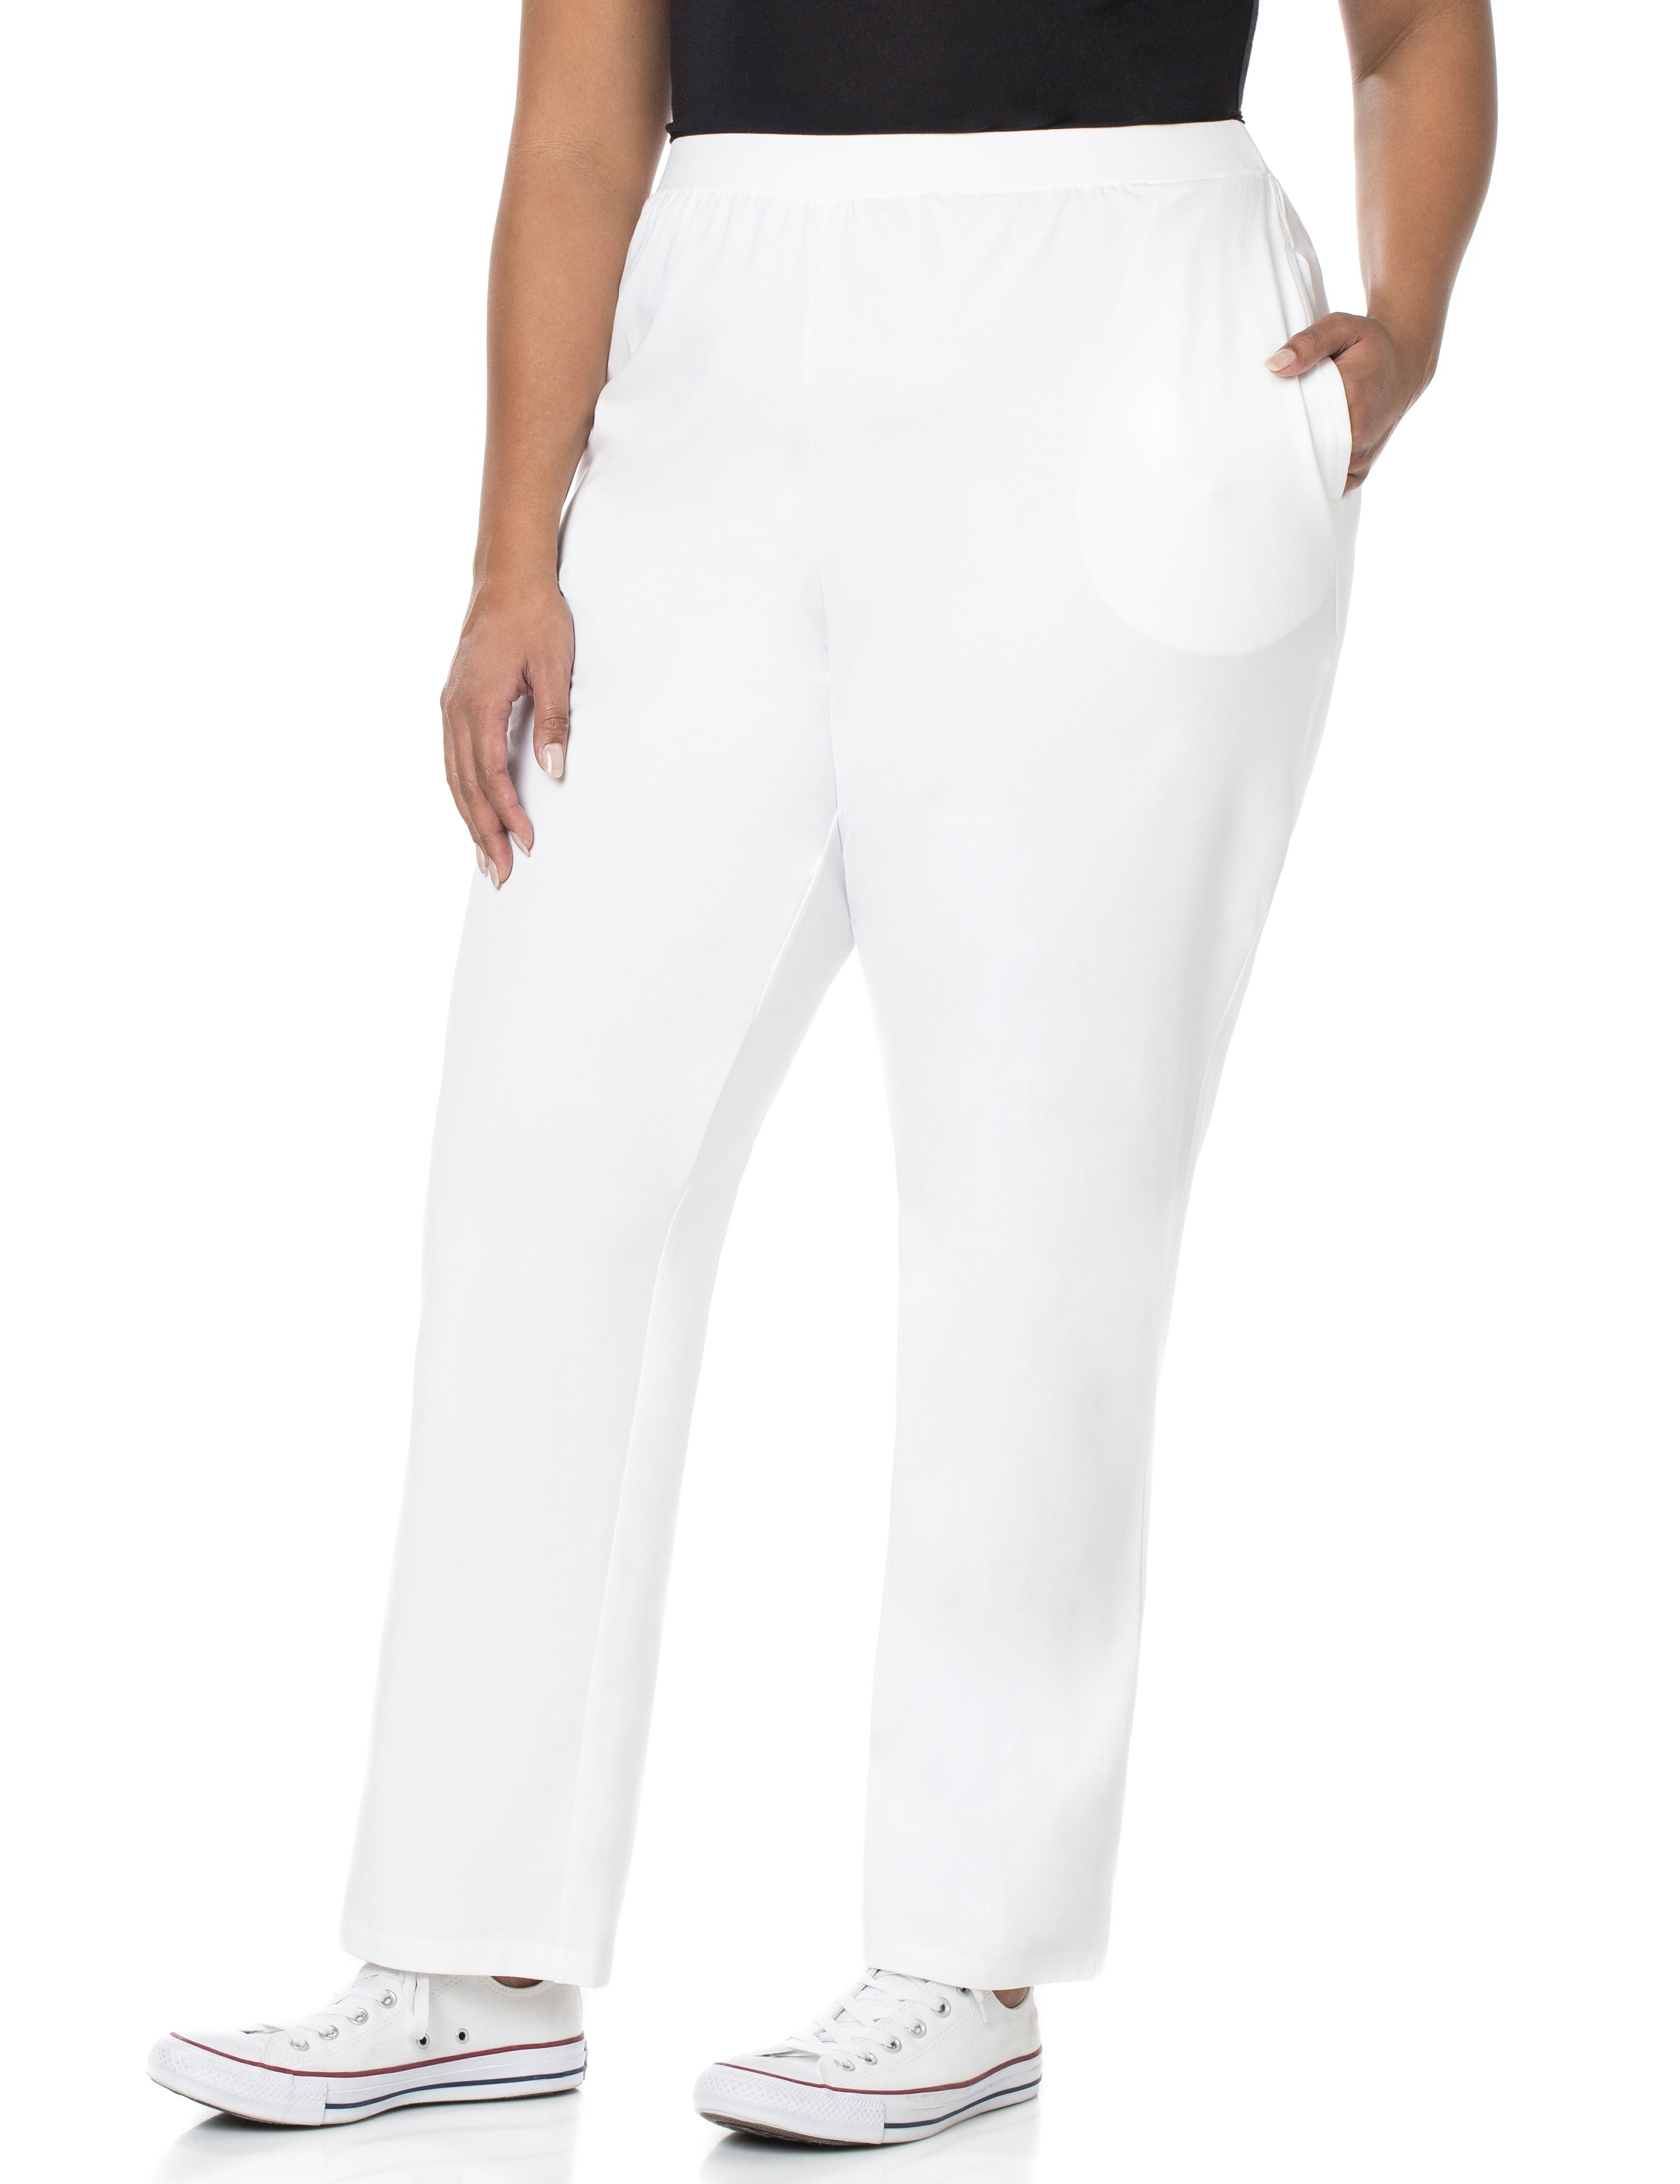 Suprema Knit Pant (Modern Colors) Suprema Knit Pant (Modern Colors) MP-300014511